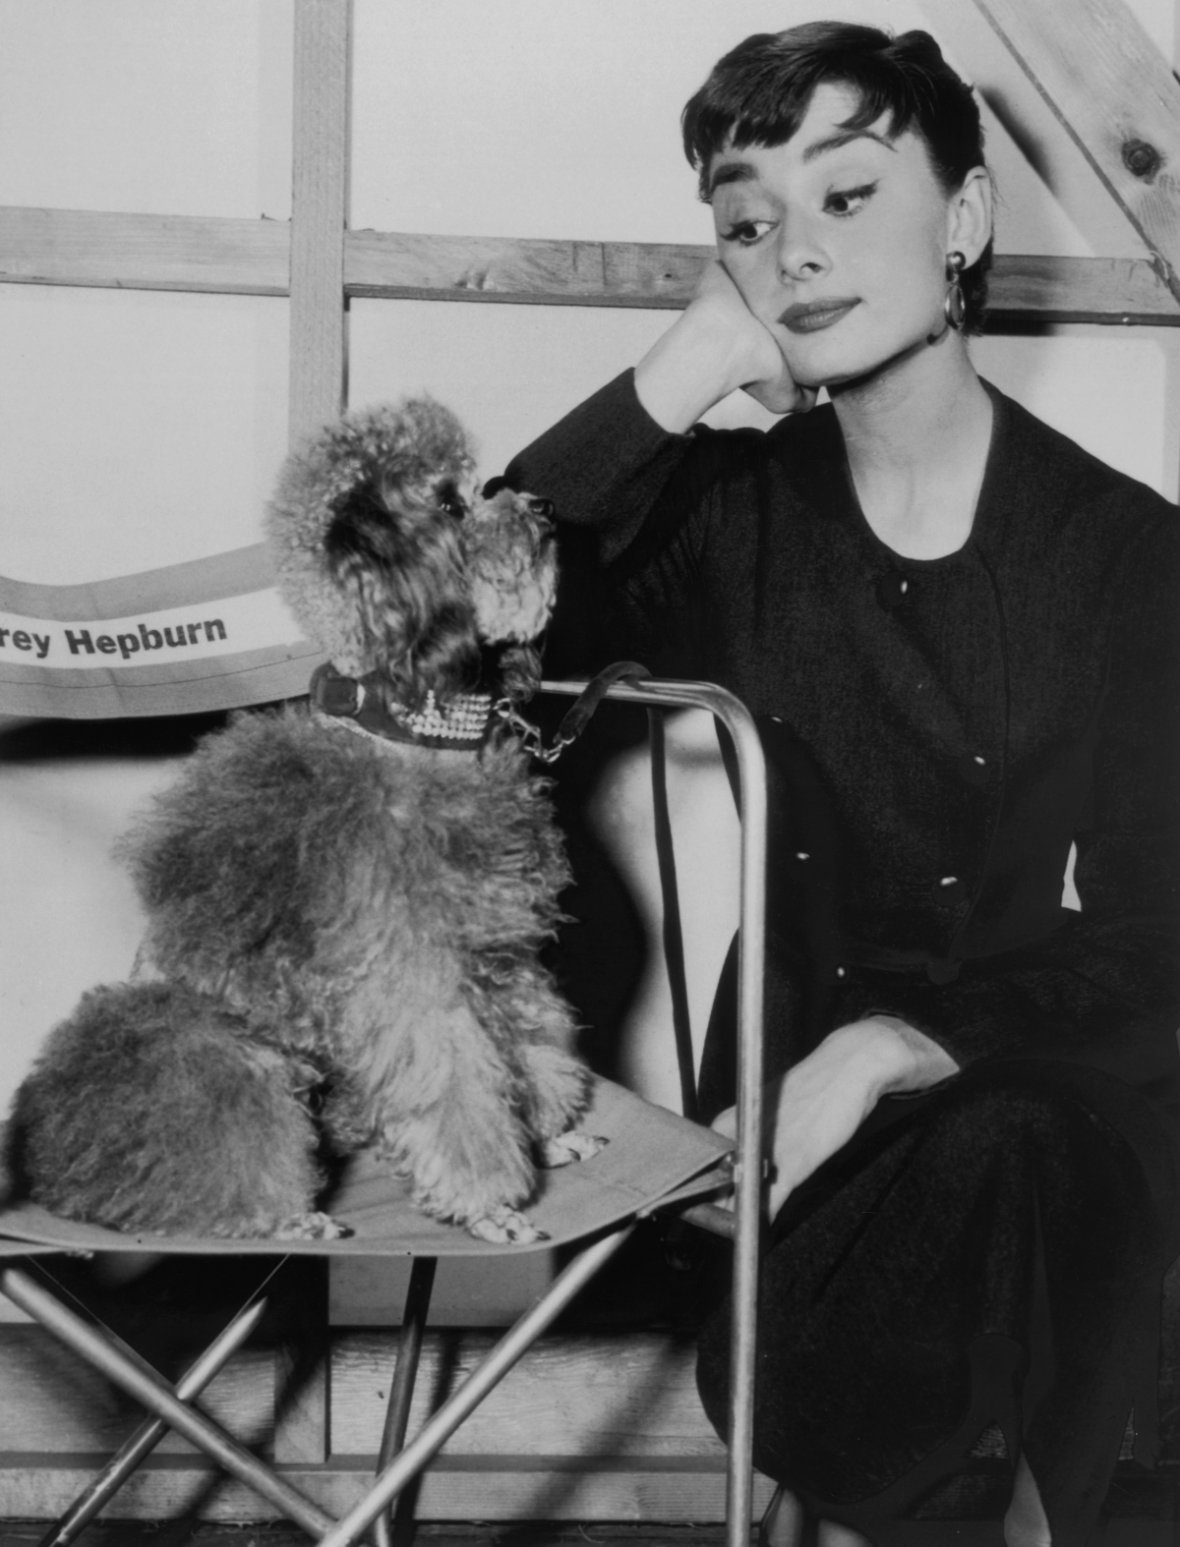 Audrey Hepburn on a film set with her pet poodle, circa 1960